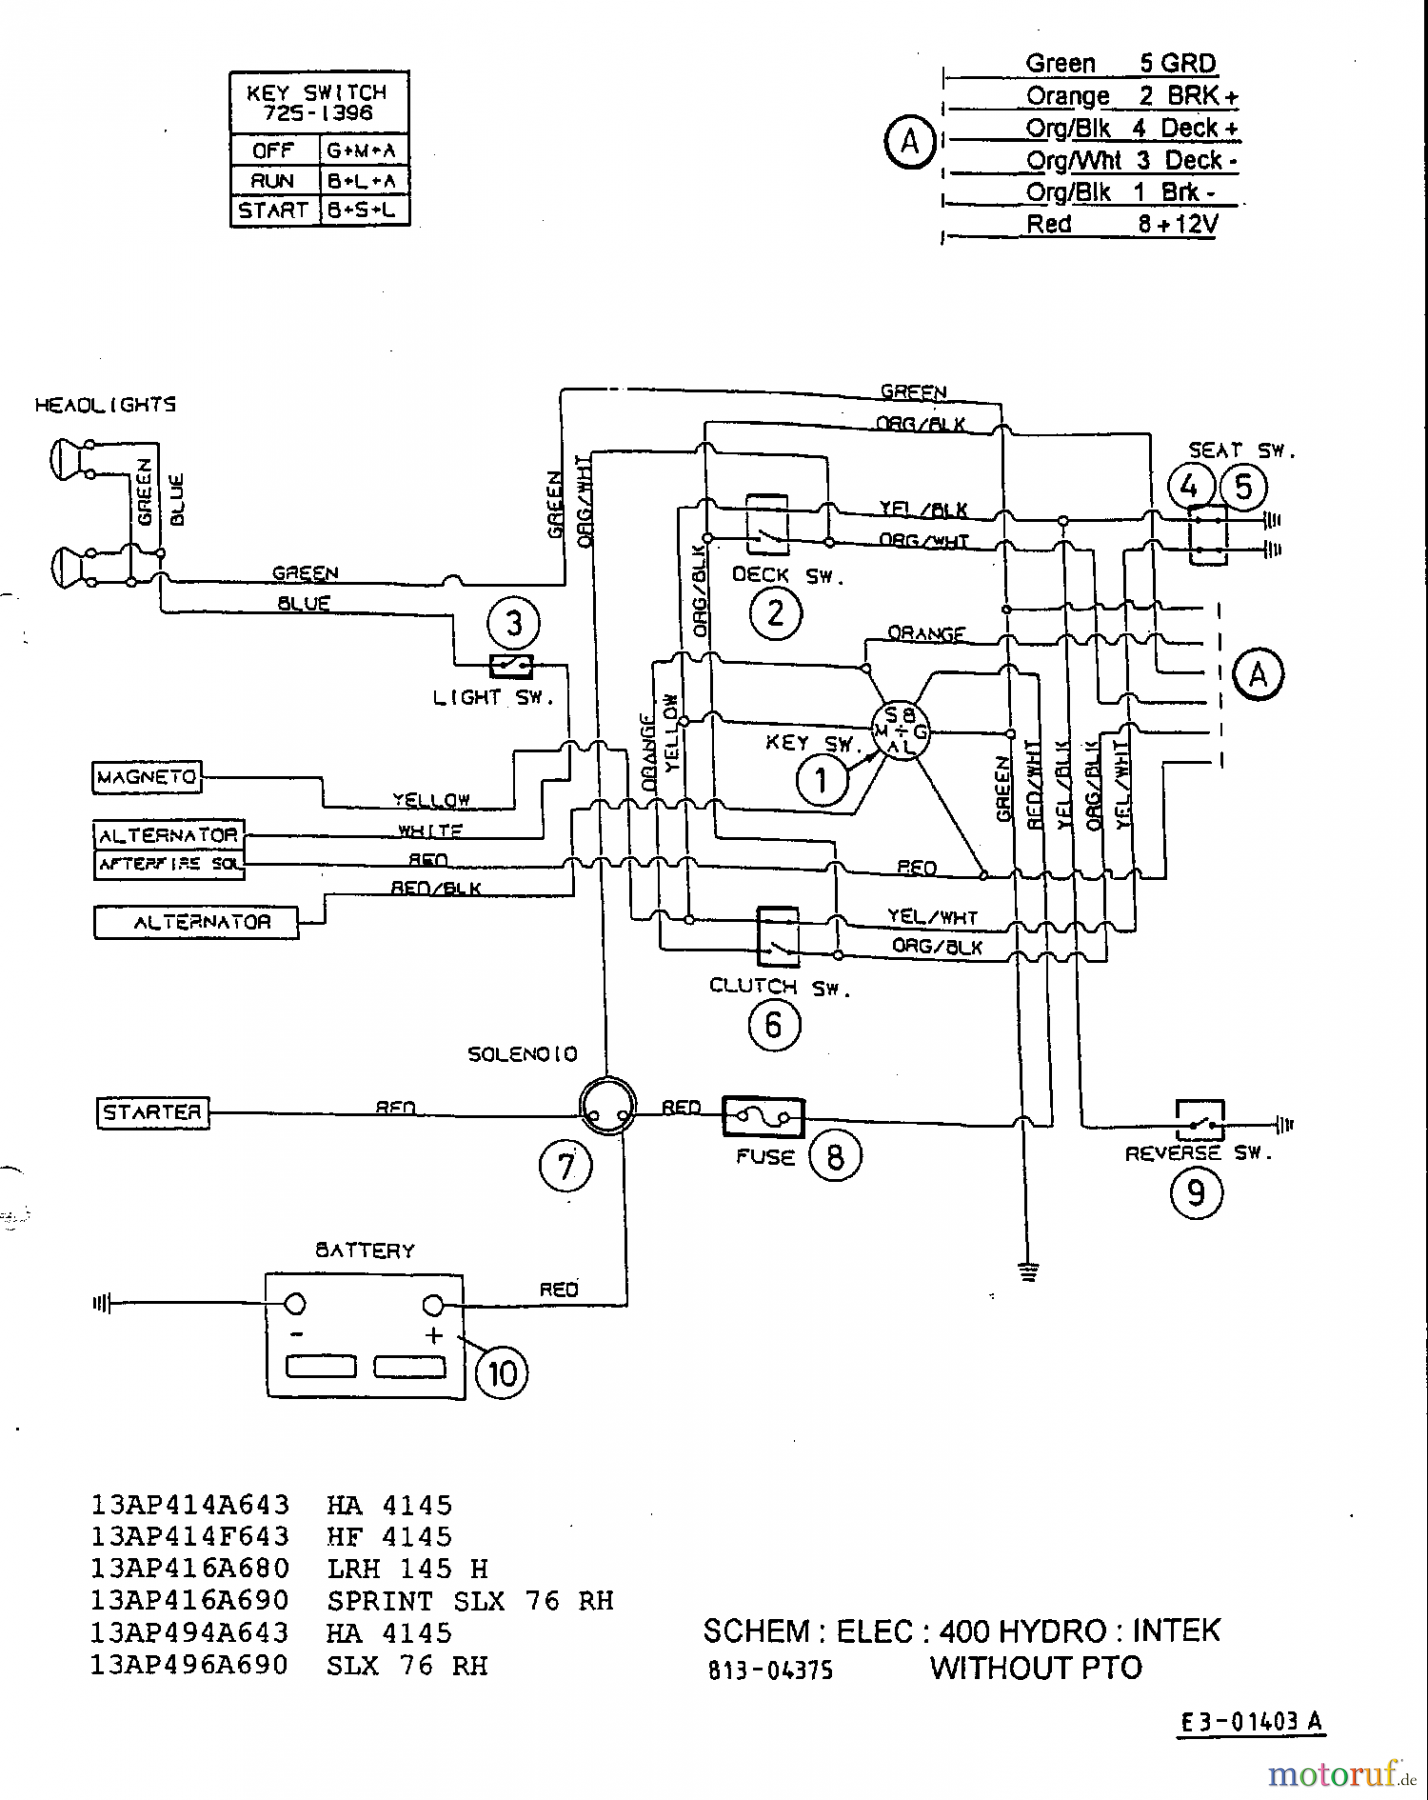 garden tractor ignition switch diagram wiring diagram rh wiring3 ennosbobbelparty1 de